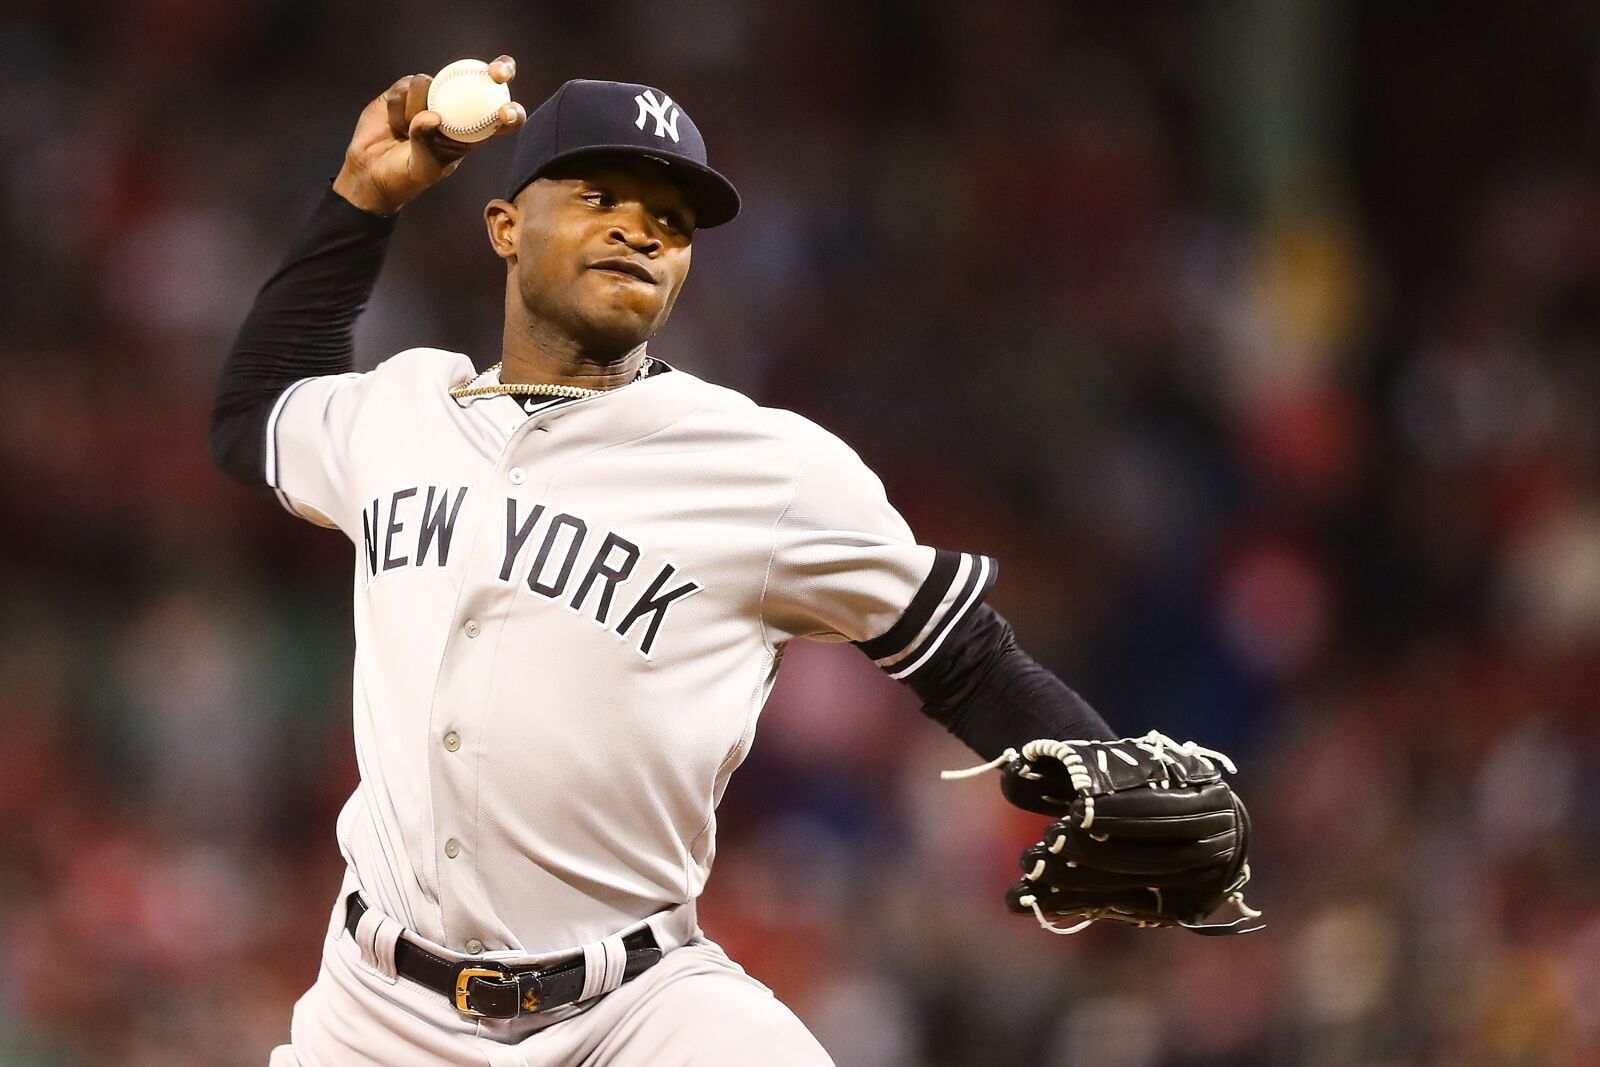 Yankees offseason could change with Domingo German suspension